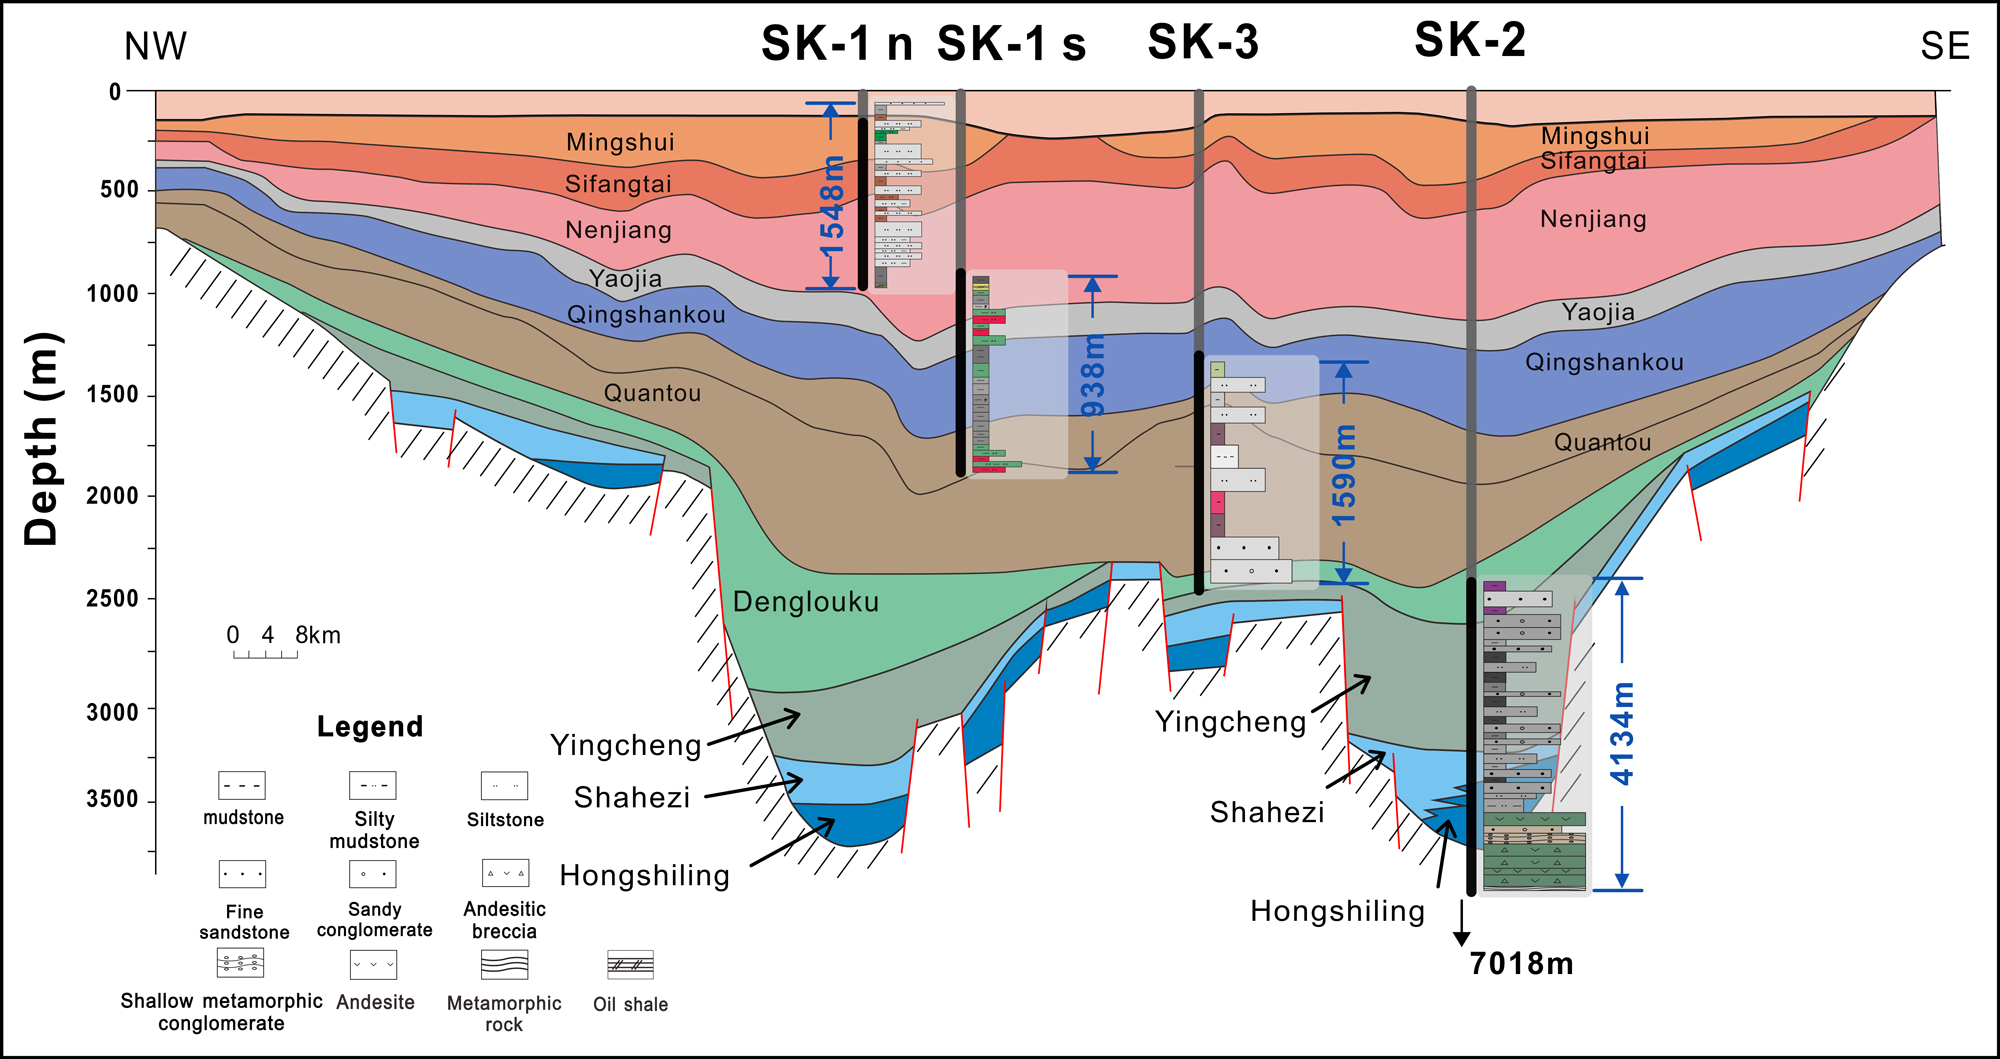 Cross sectional diagram of the Songliao Basin showing layers of sedimentary rock and the SK project's drilling and coring strategy